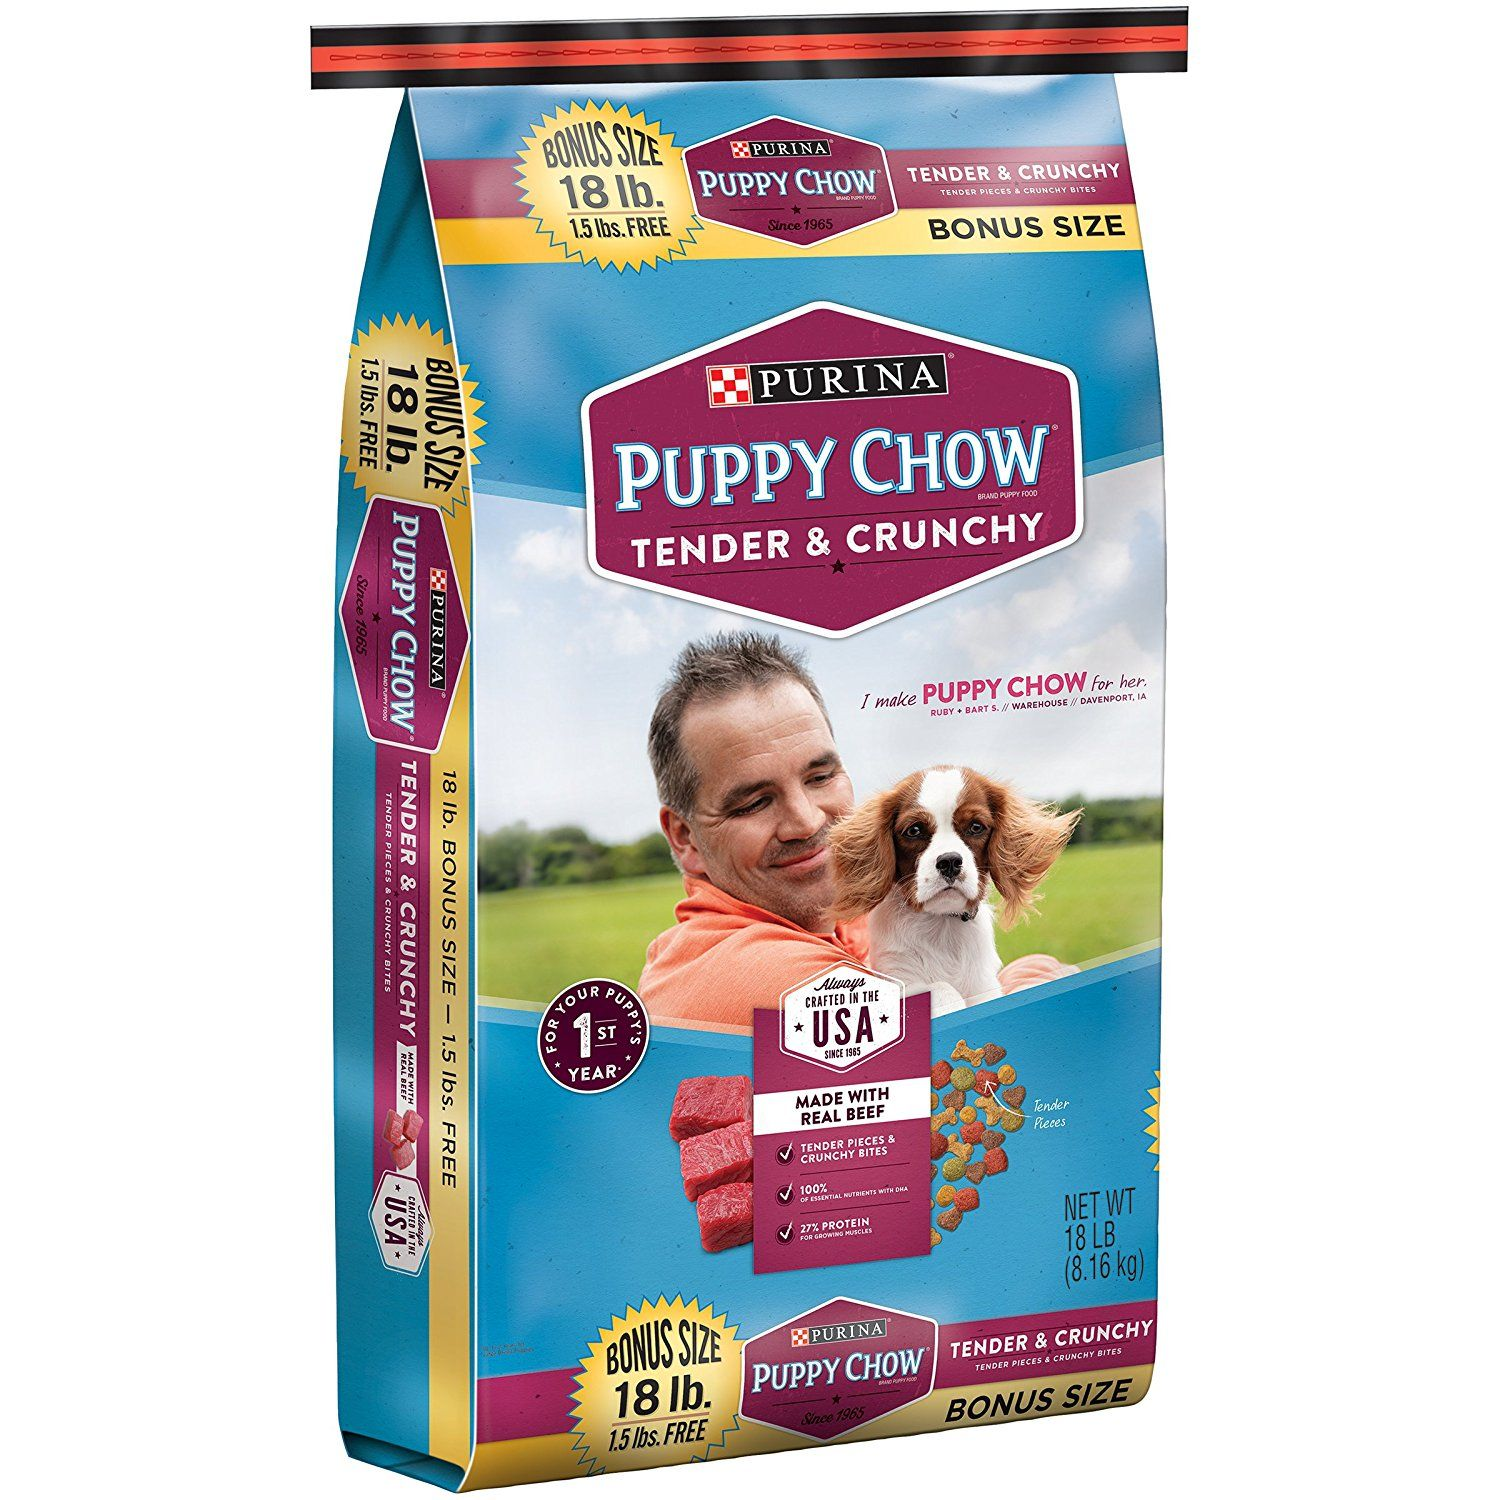 Essential vitamins and minerals purina puppy chow tender